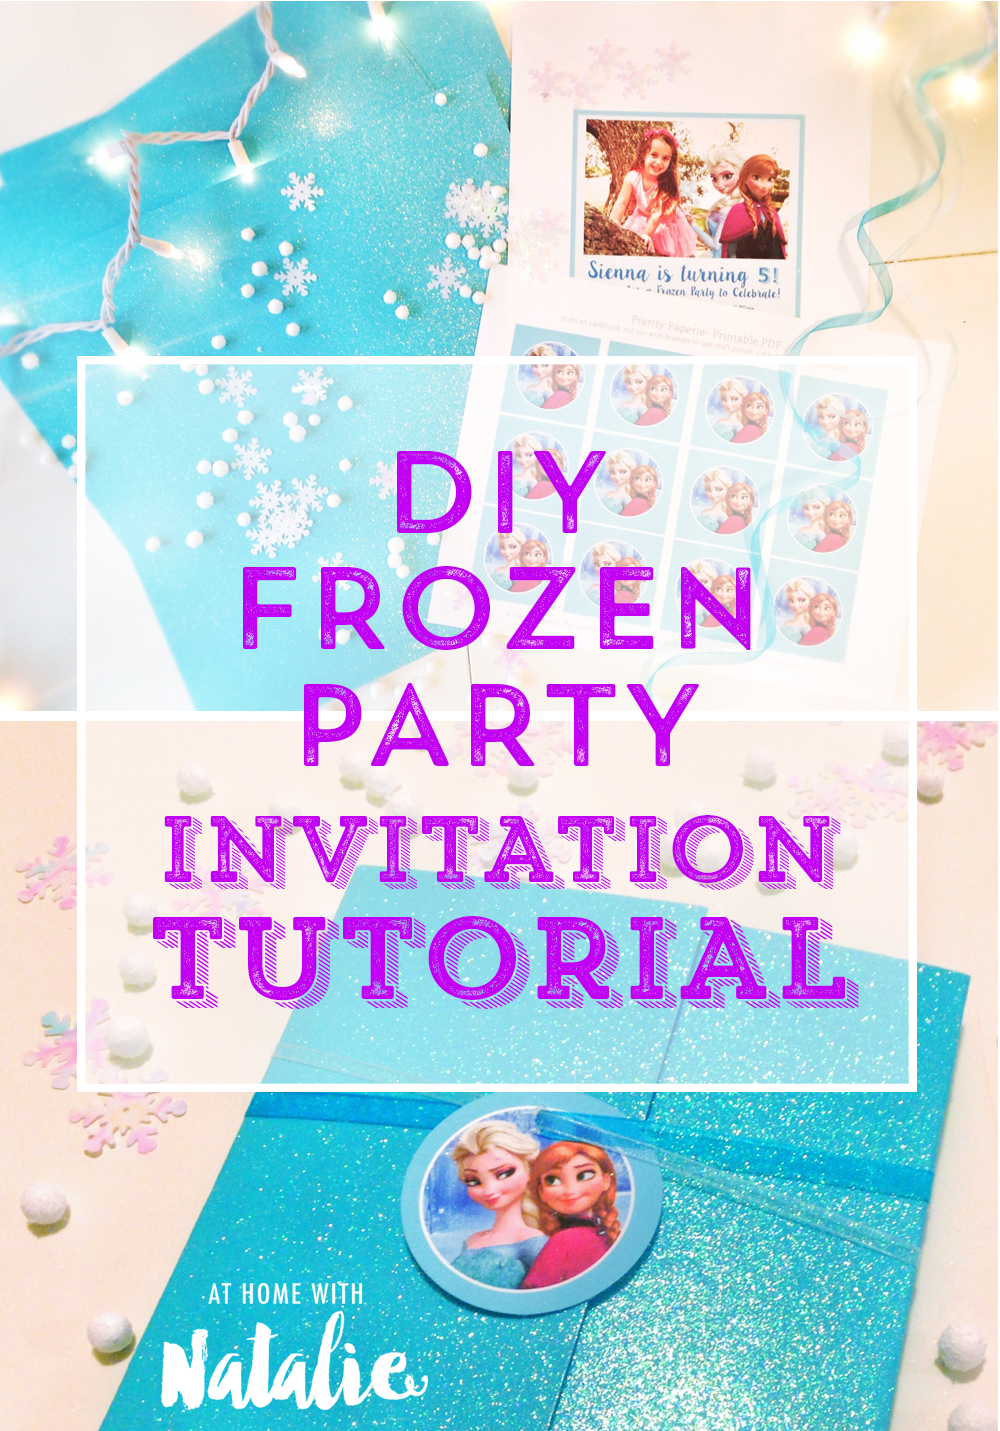 Diy Frozen Party Invitation Tutorial-Free Printable! – At Home With - Free Printable Frozen Birthday Invitations